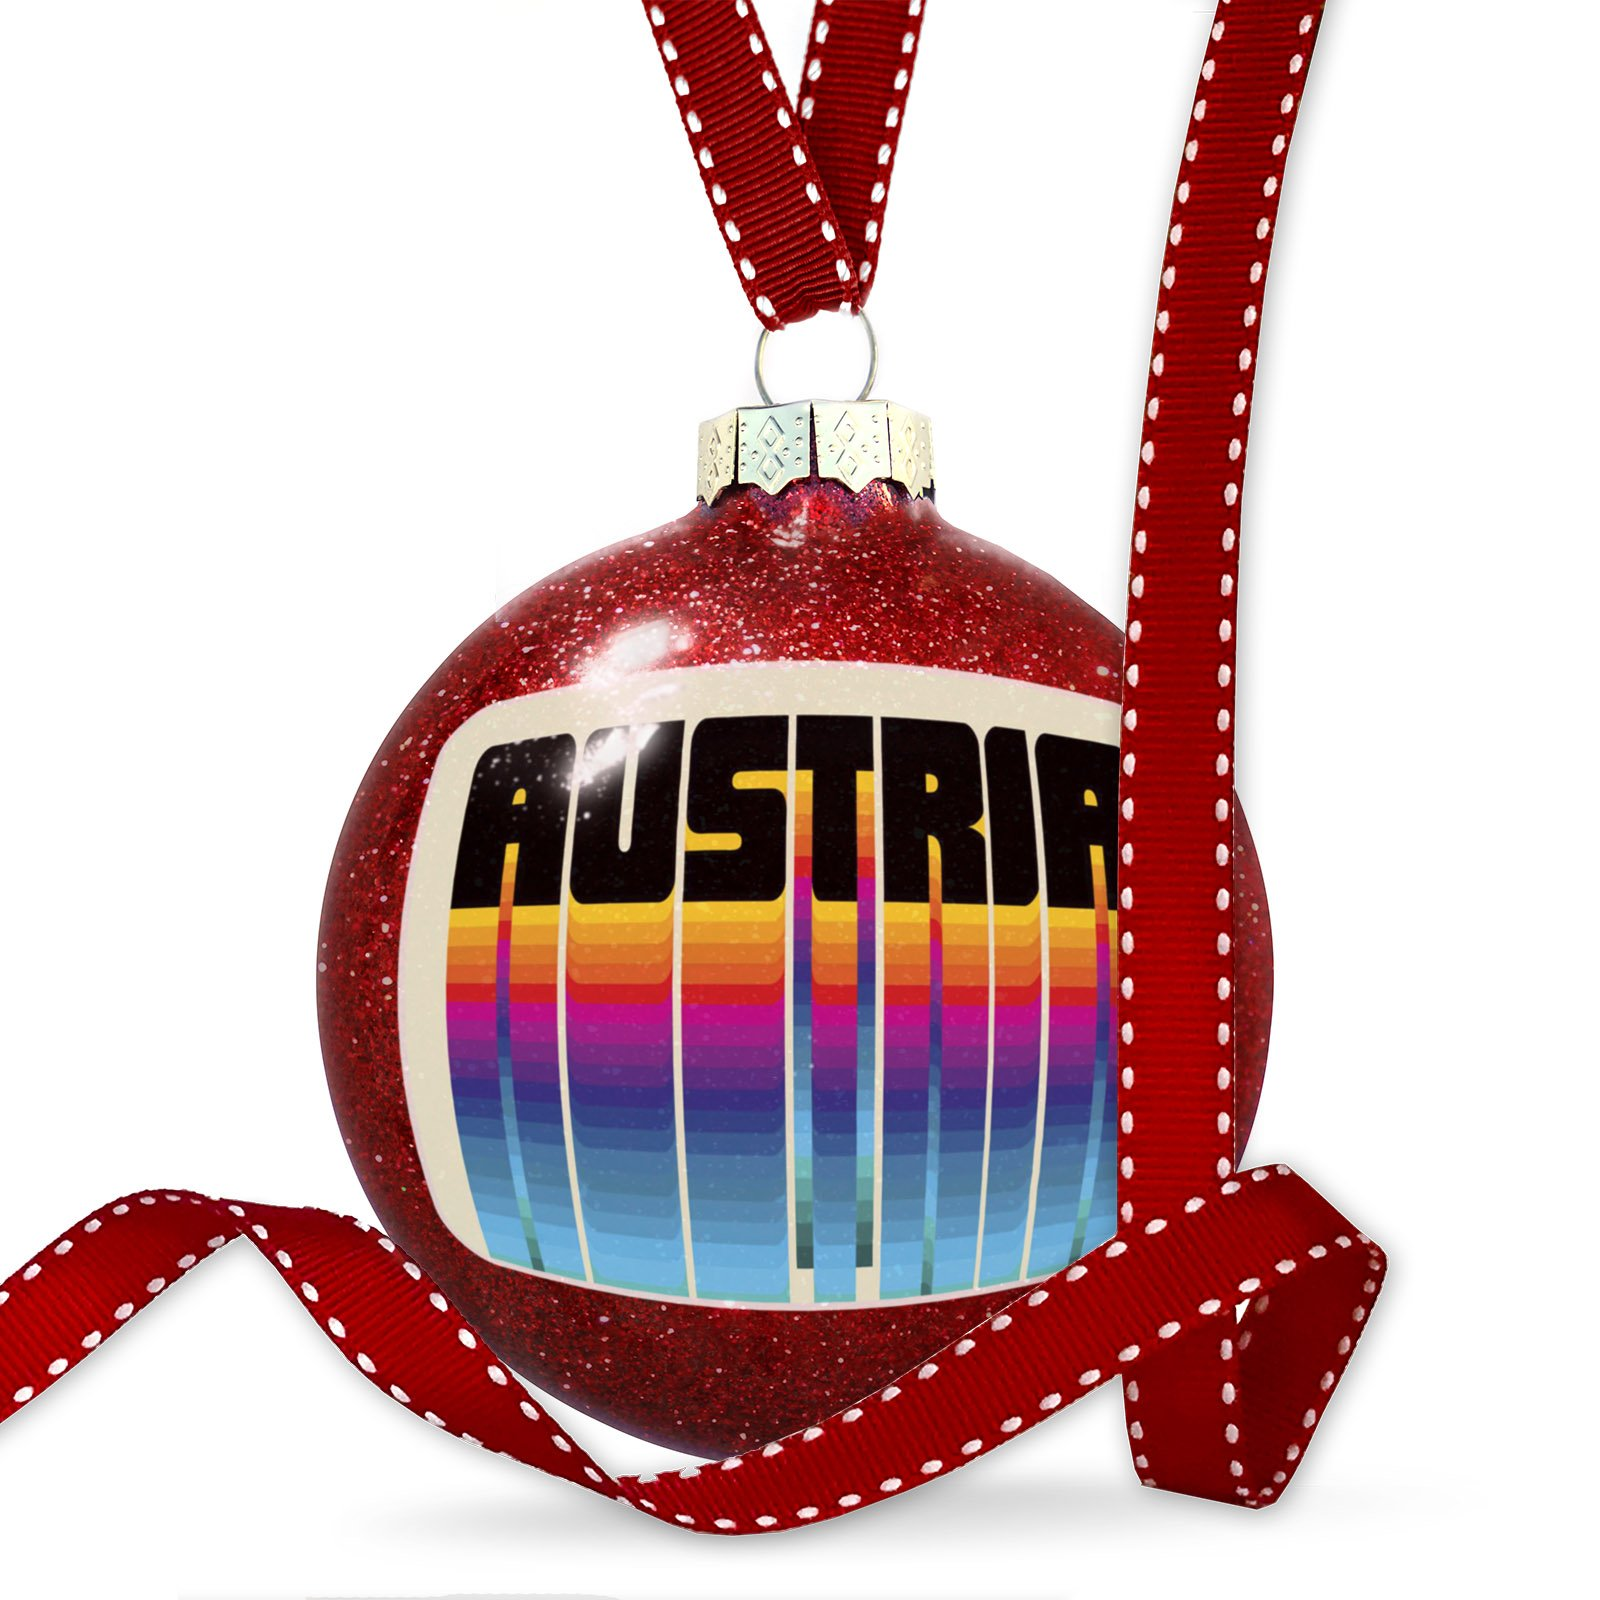 Christmas Decoration Retro Cites States Countries Austria Ornament